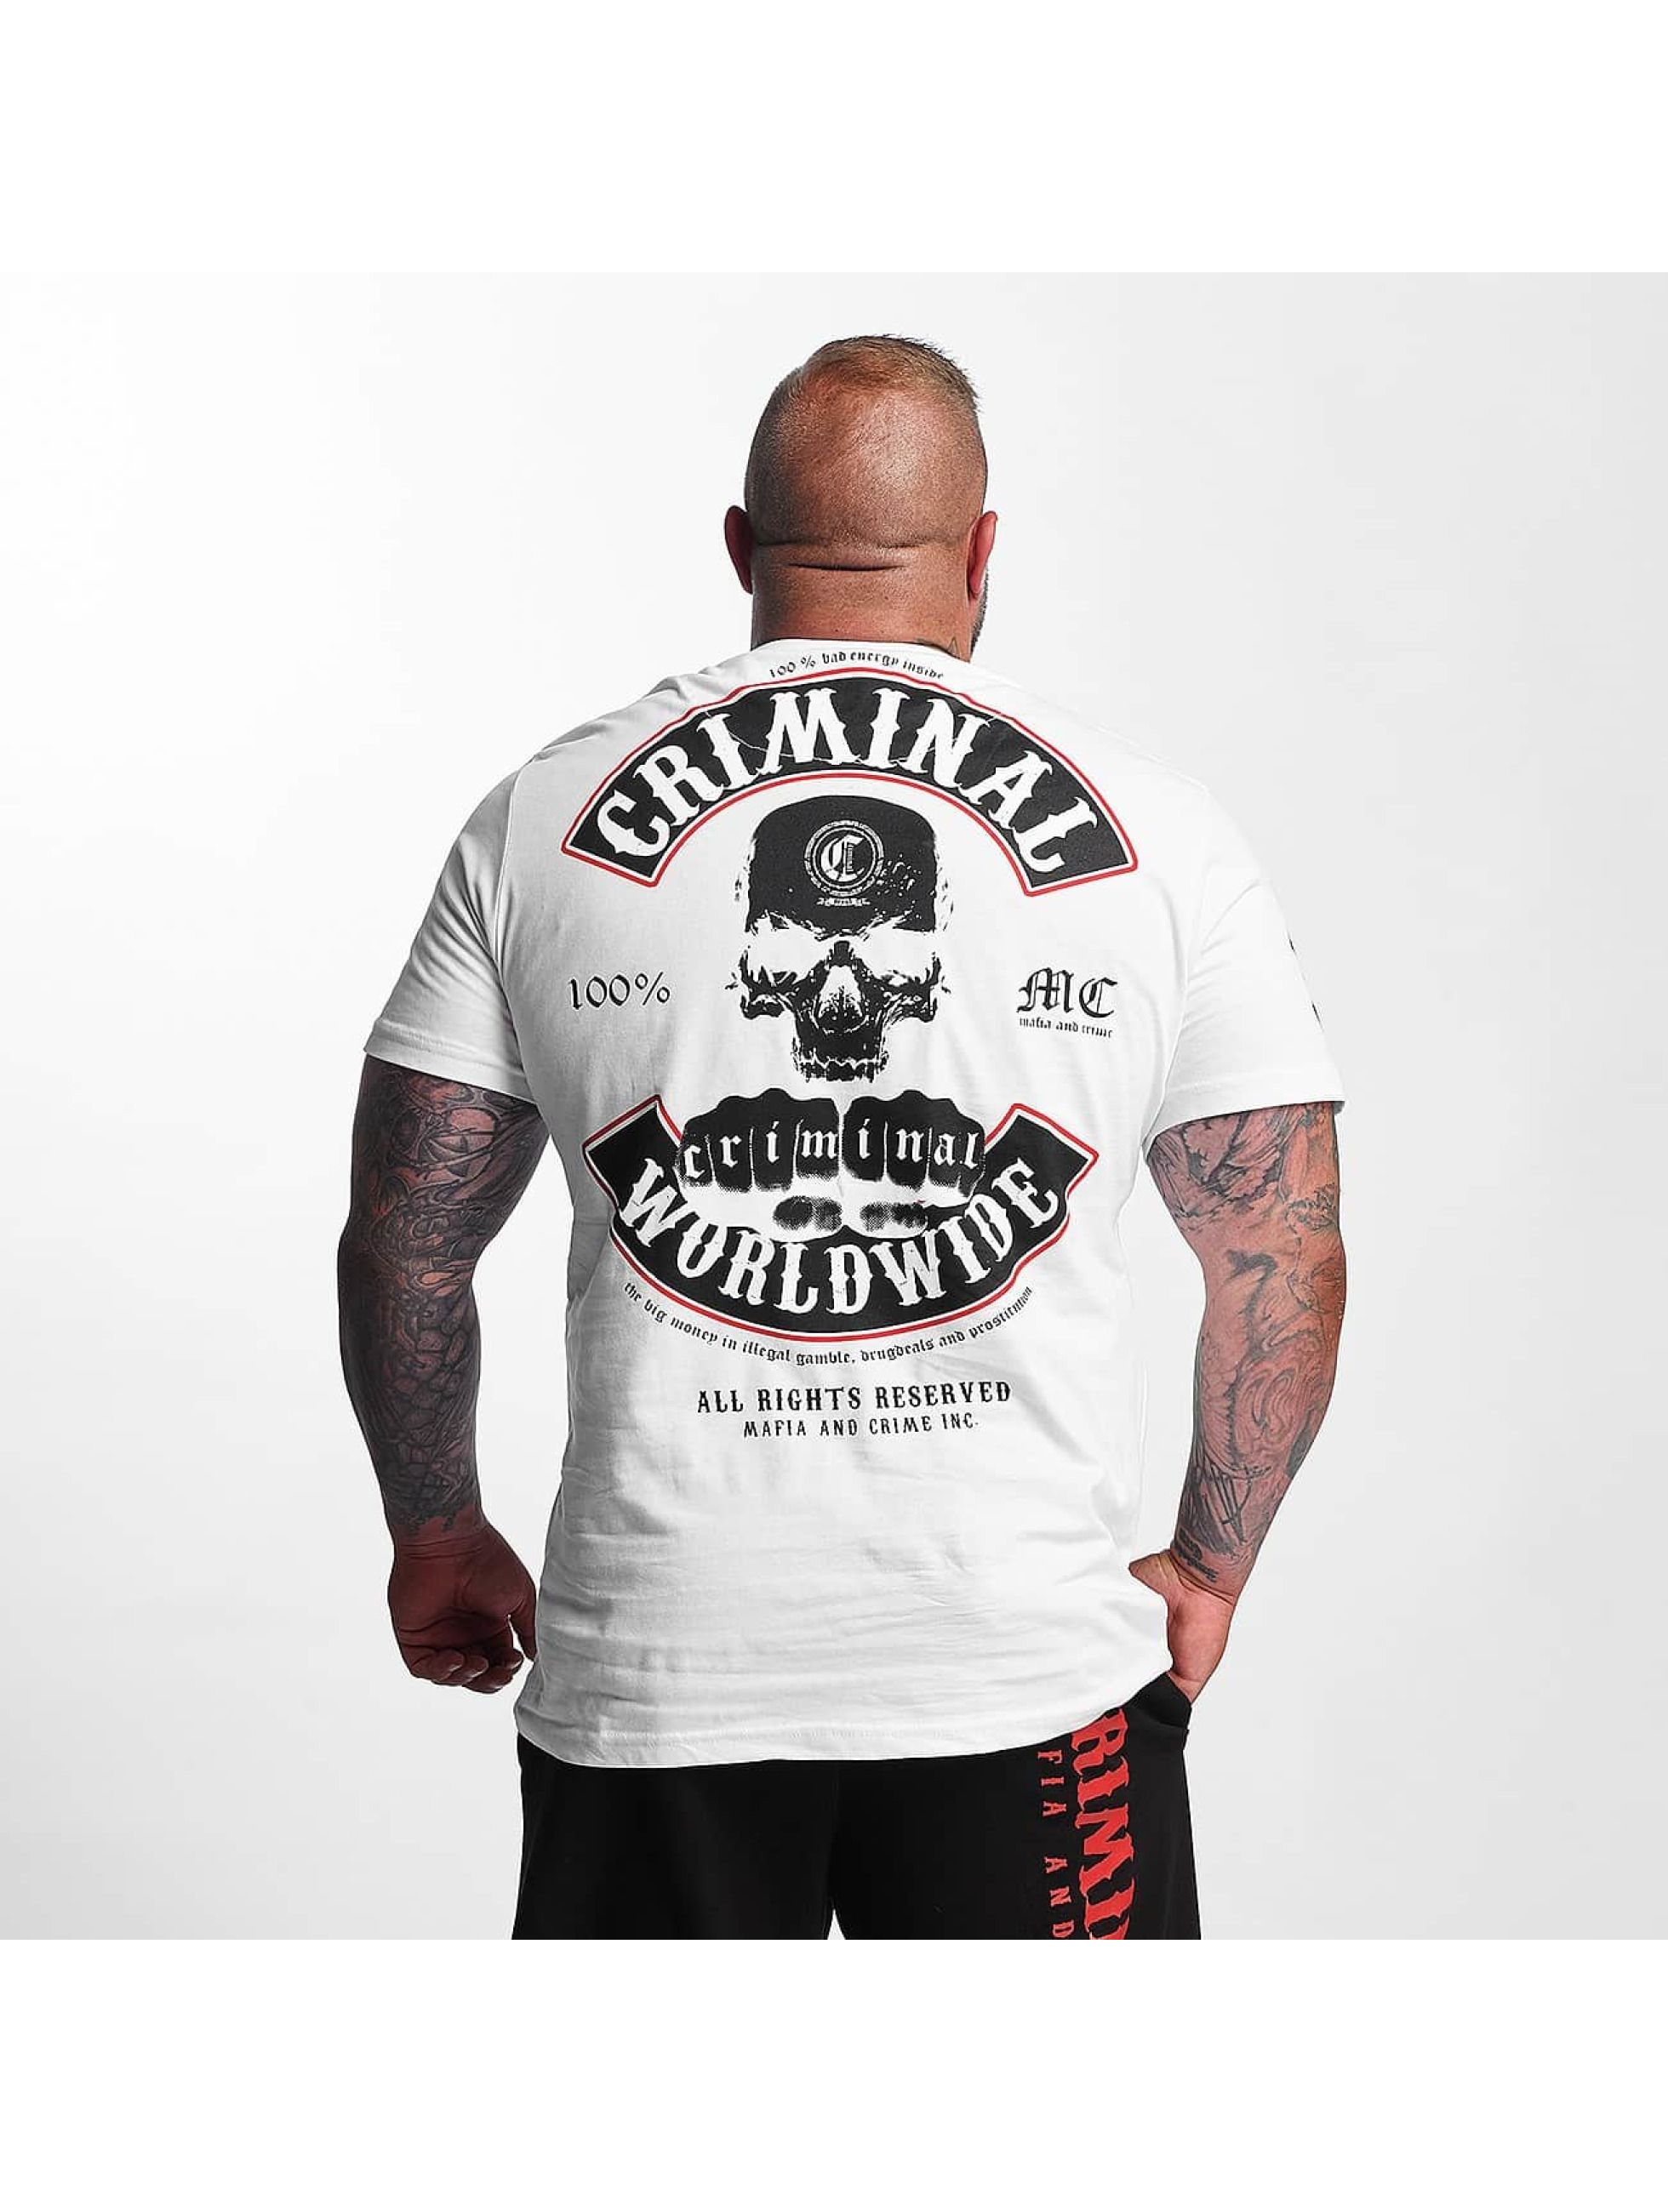 Mafia & Crime Camiseta Criminal Worldwide blanco